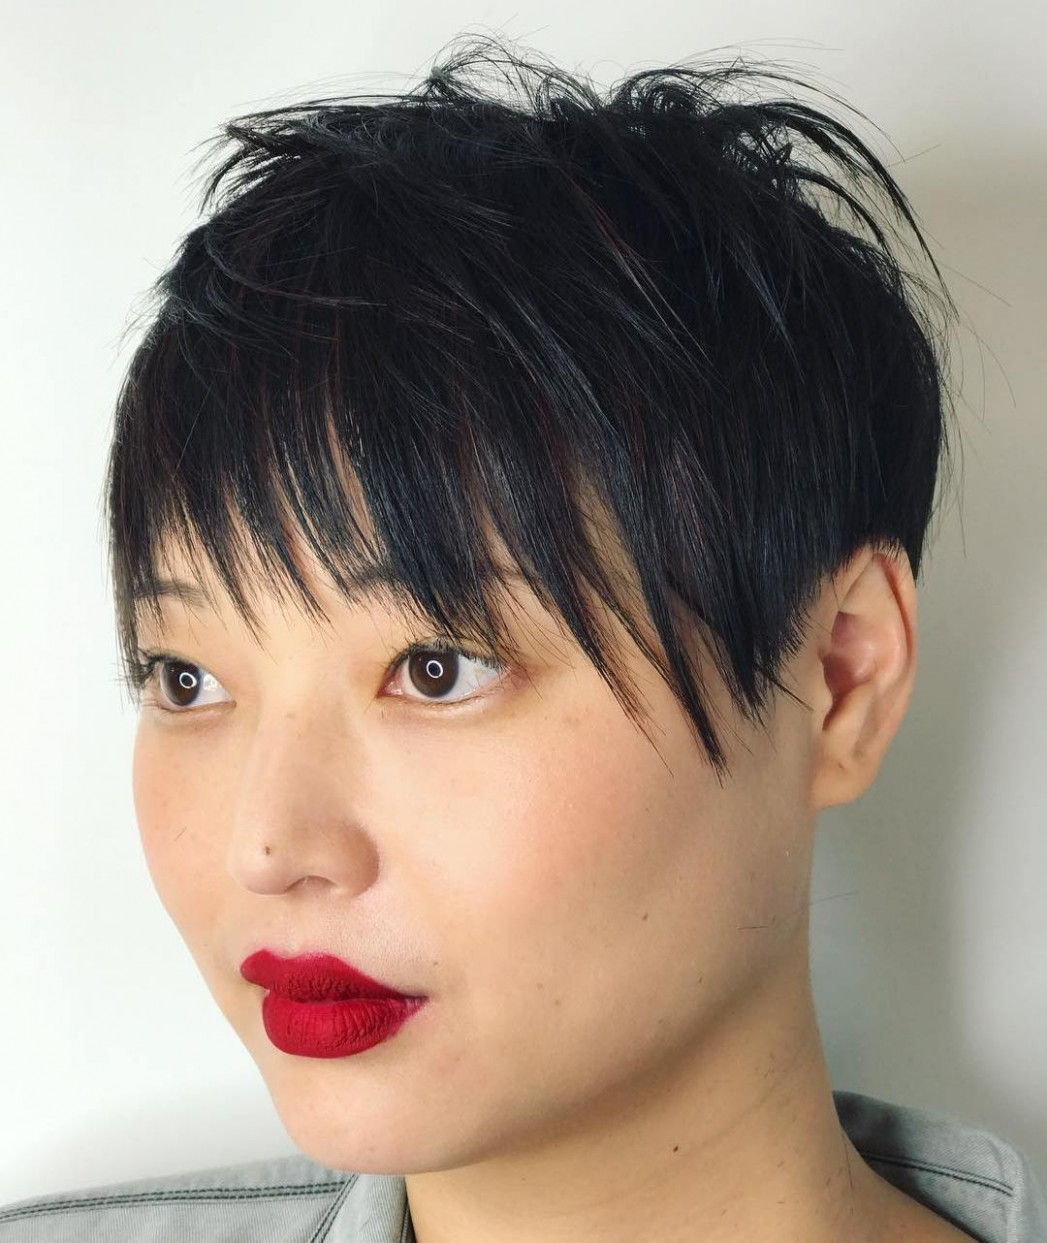 8 Short Hairstyles for Round Faces with Slimming Effect - Hadviser